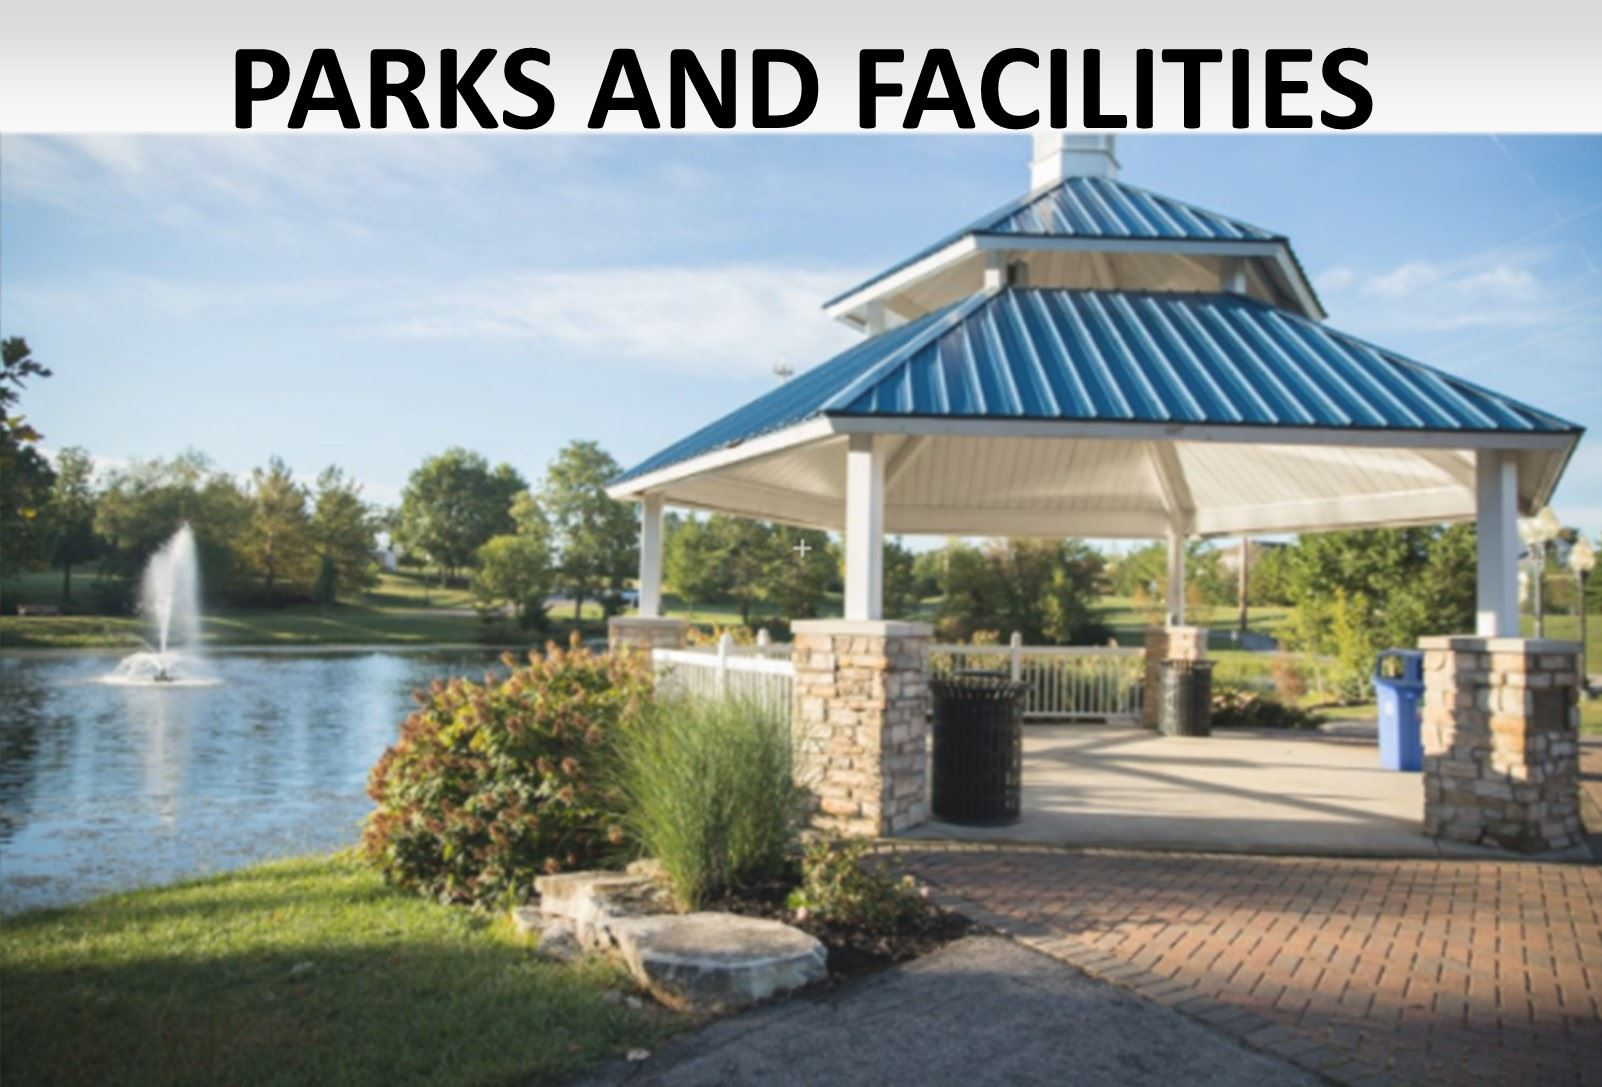 parks and facilities image